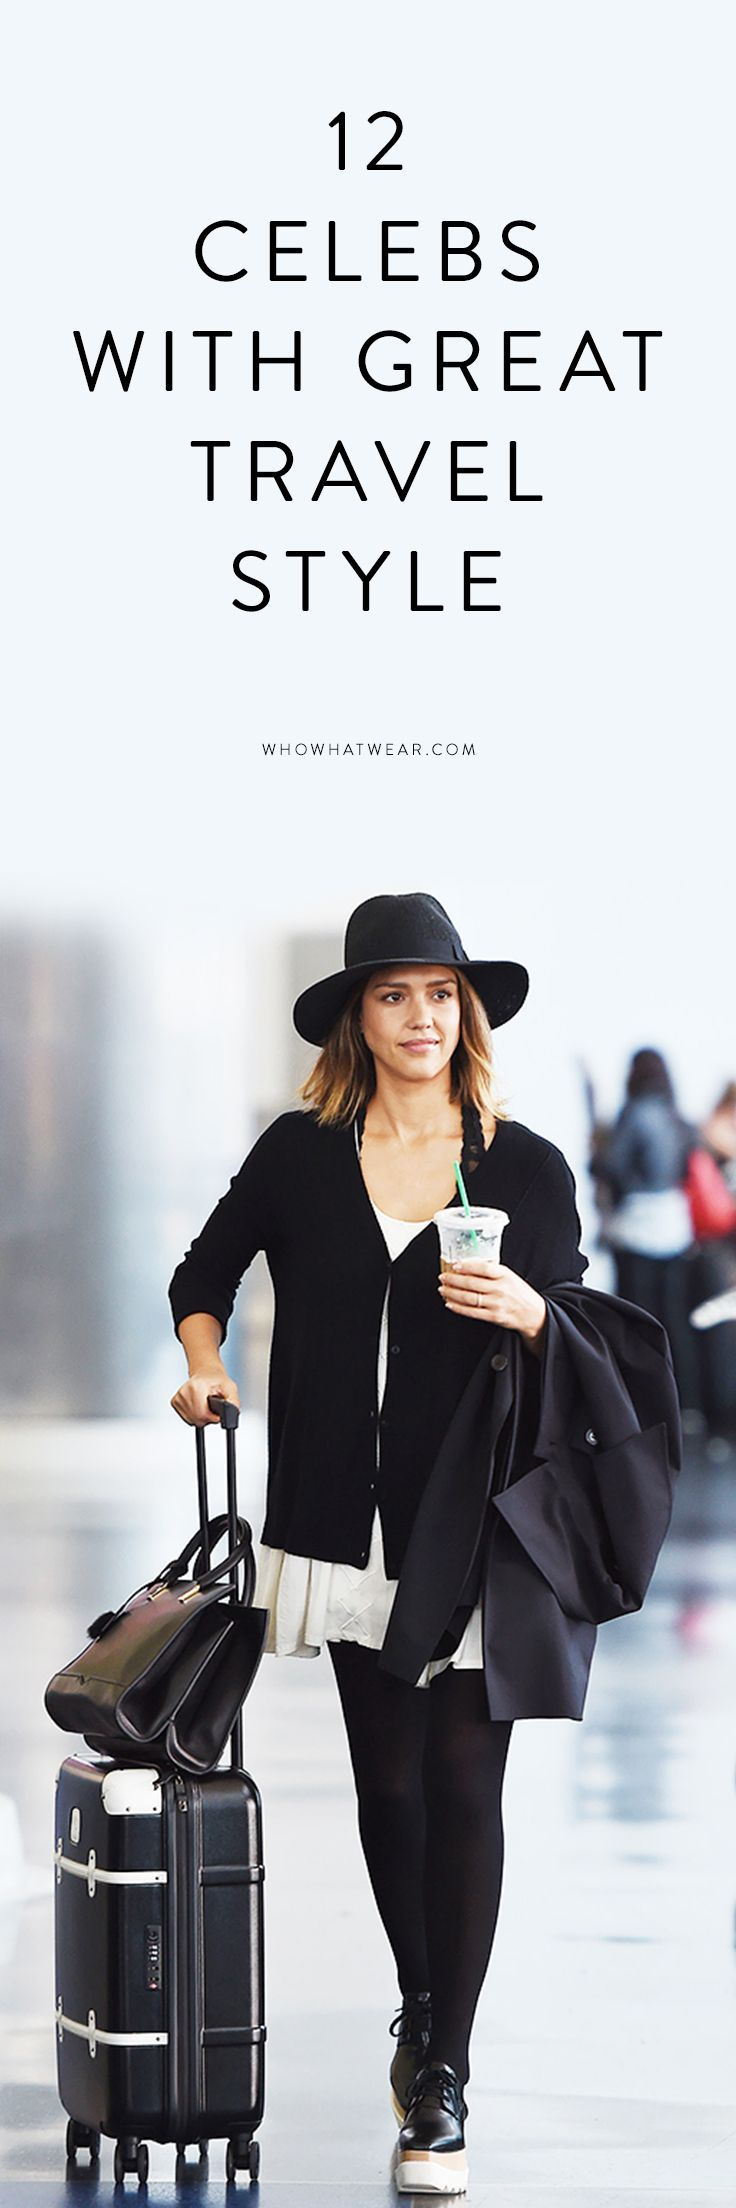 12 Insanely Stylish Celebrity Airport Arrivals -